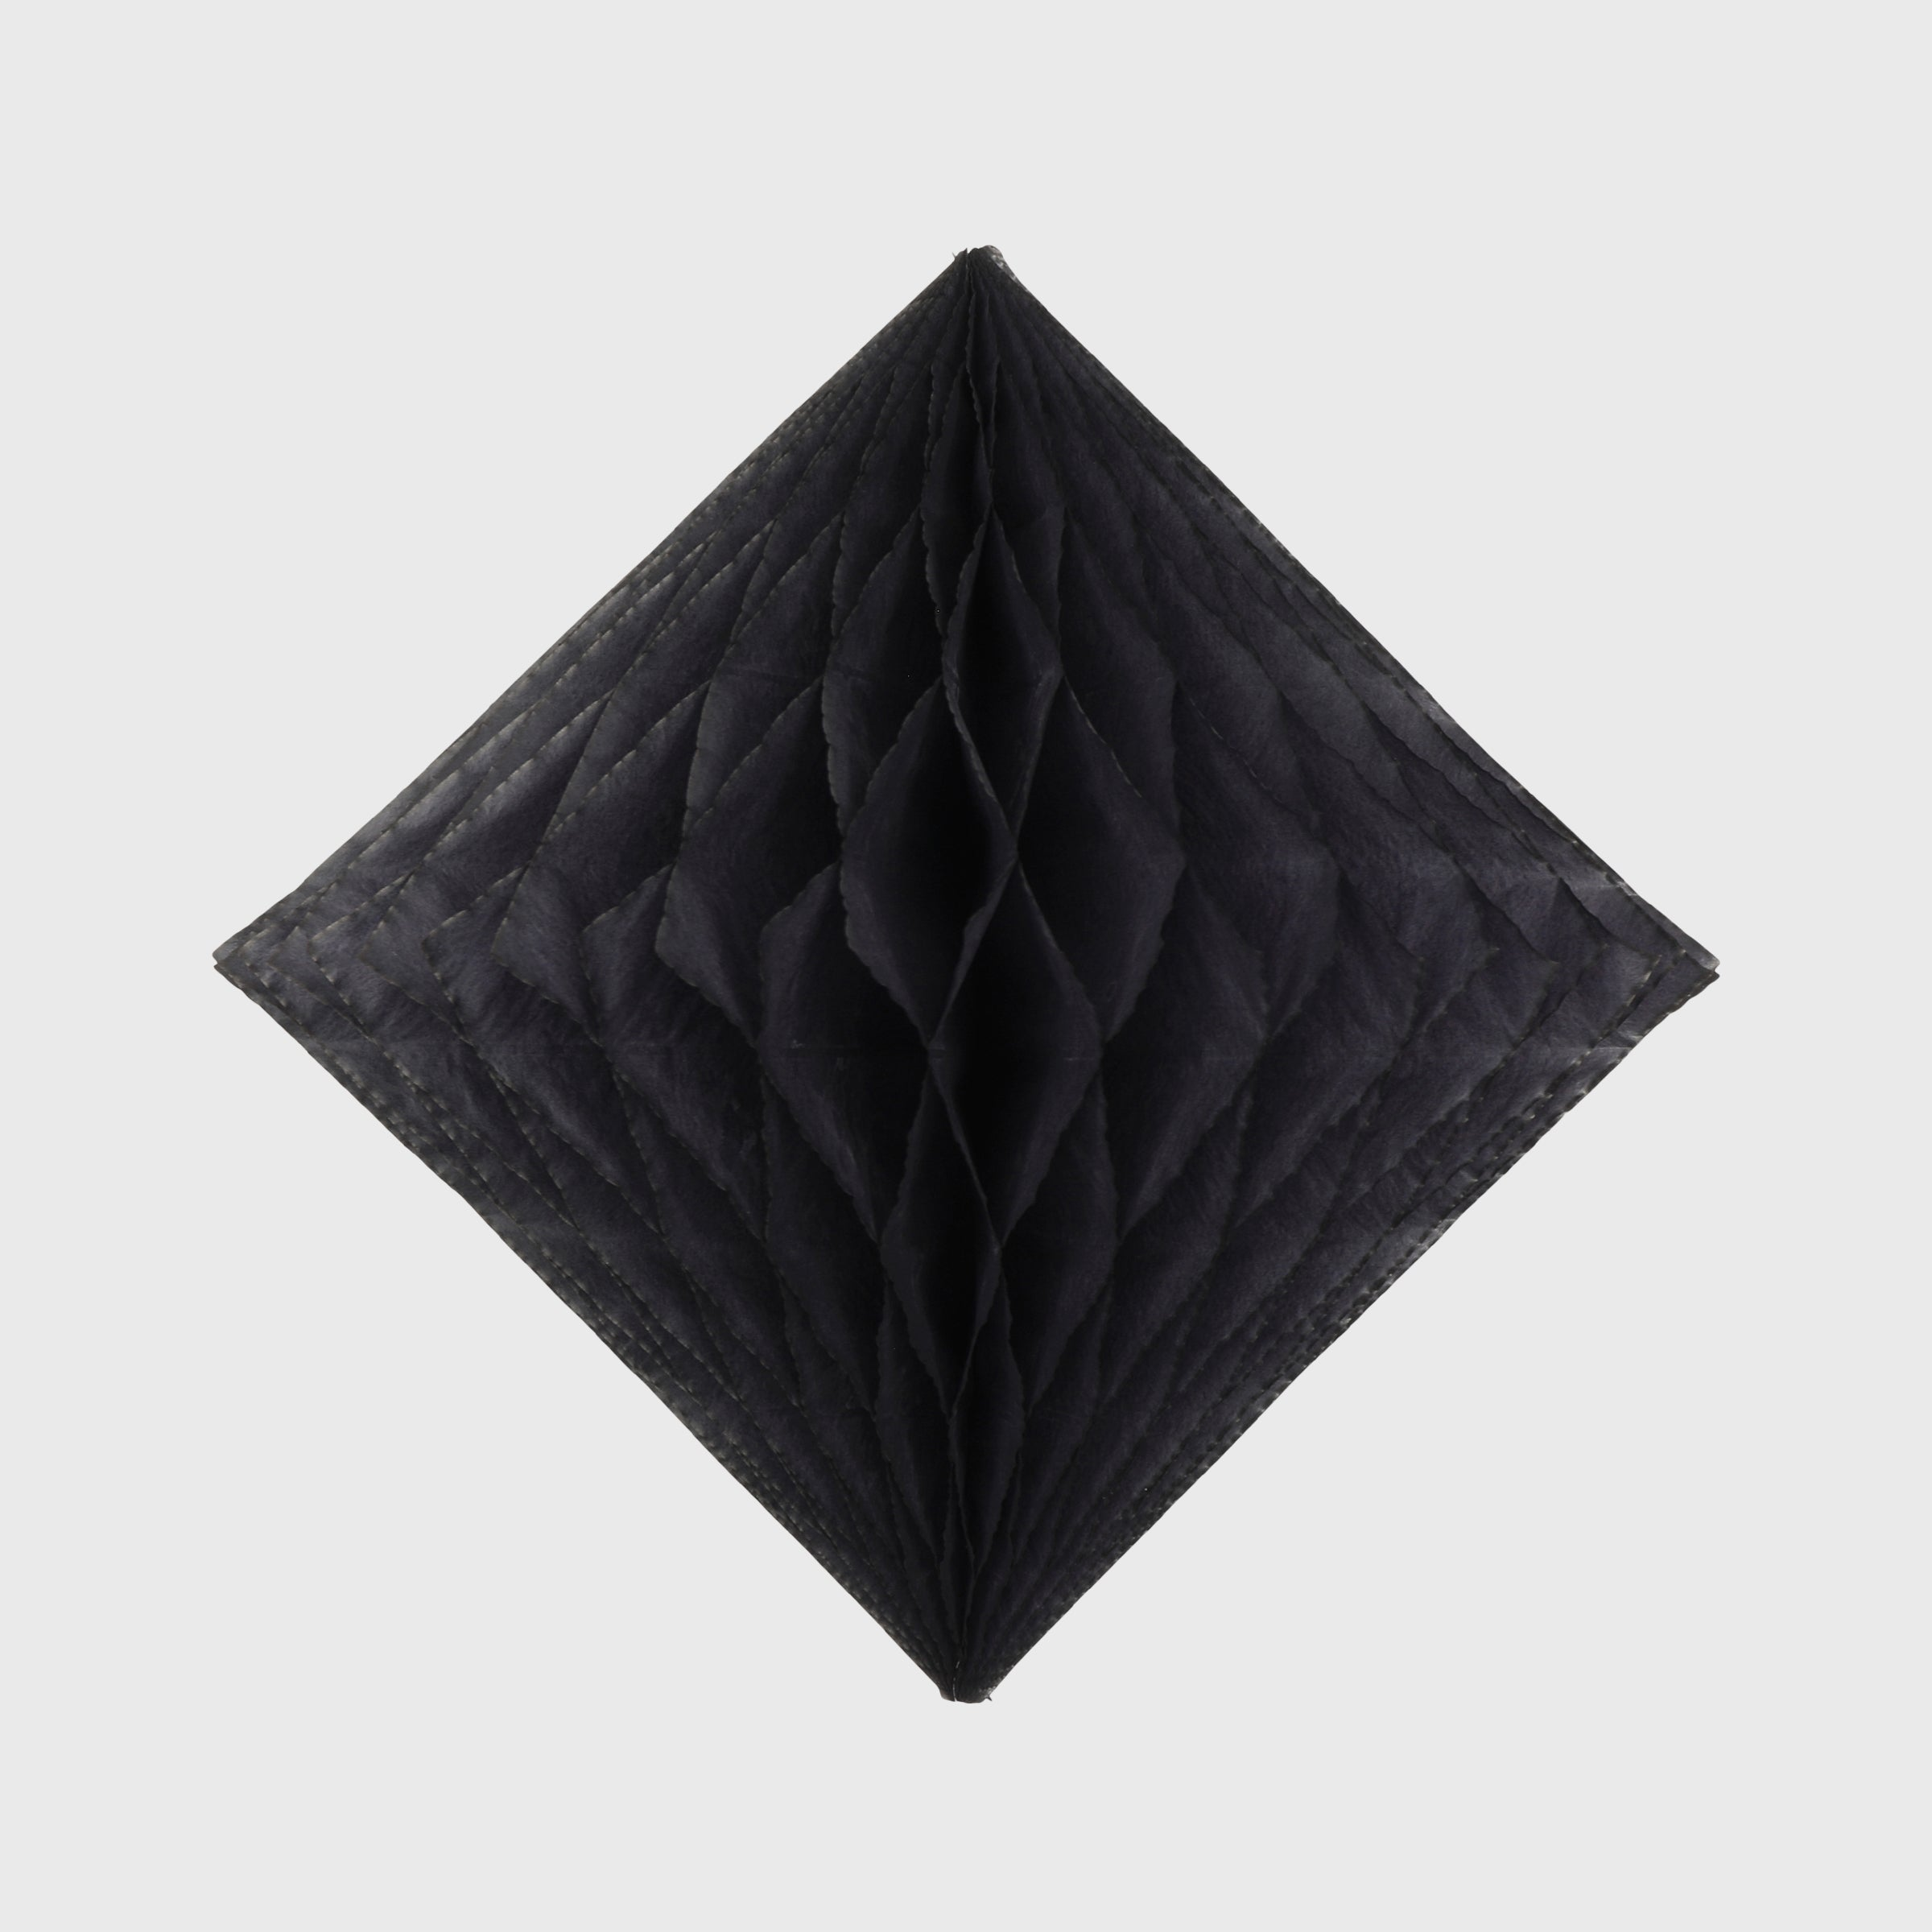 Honeycomb Diamond, Black